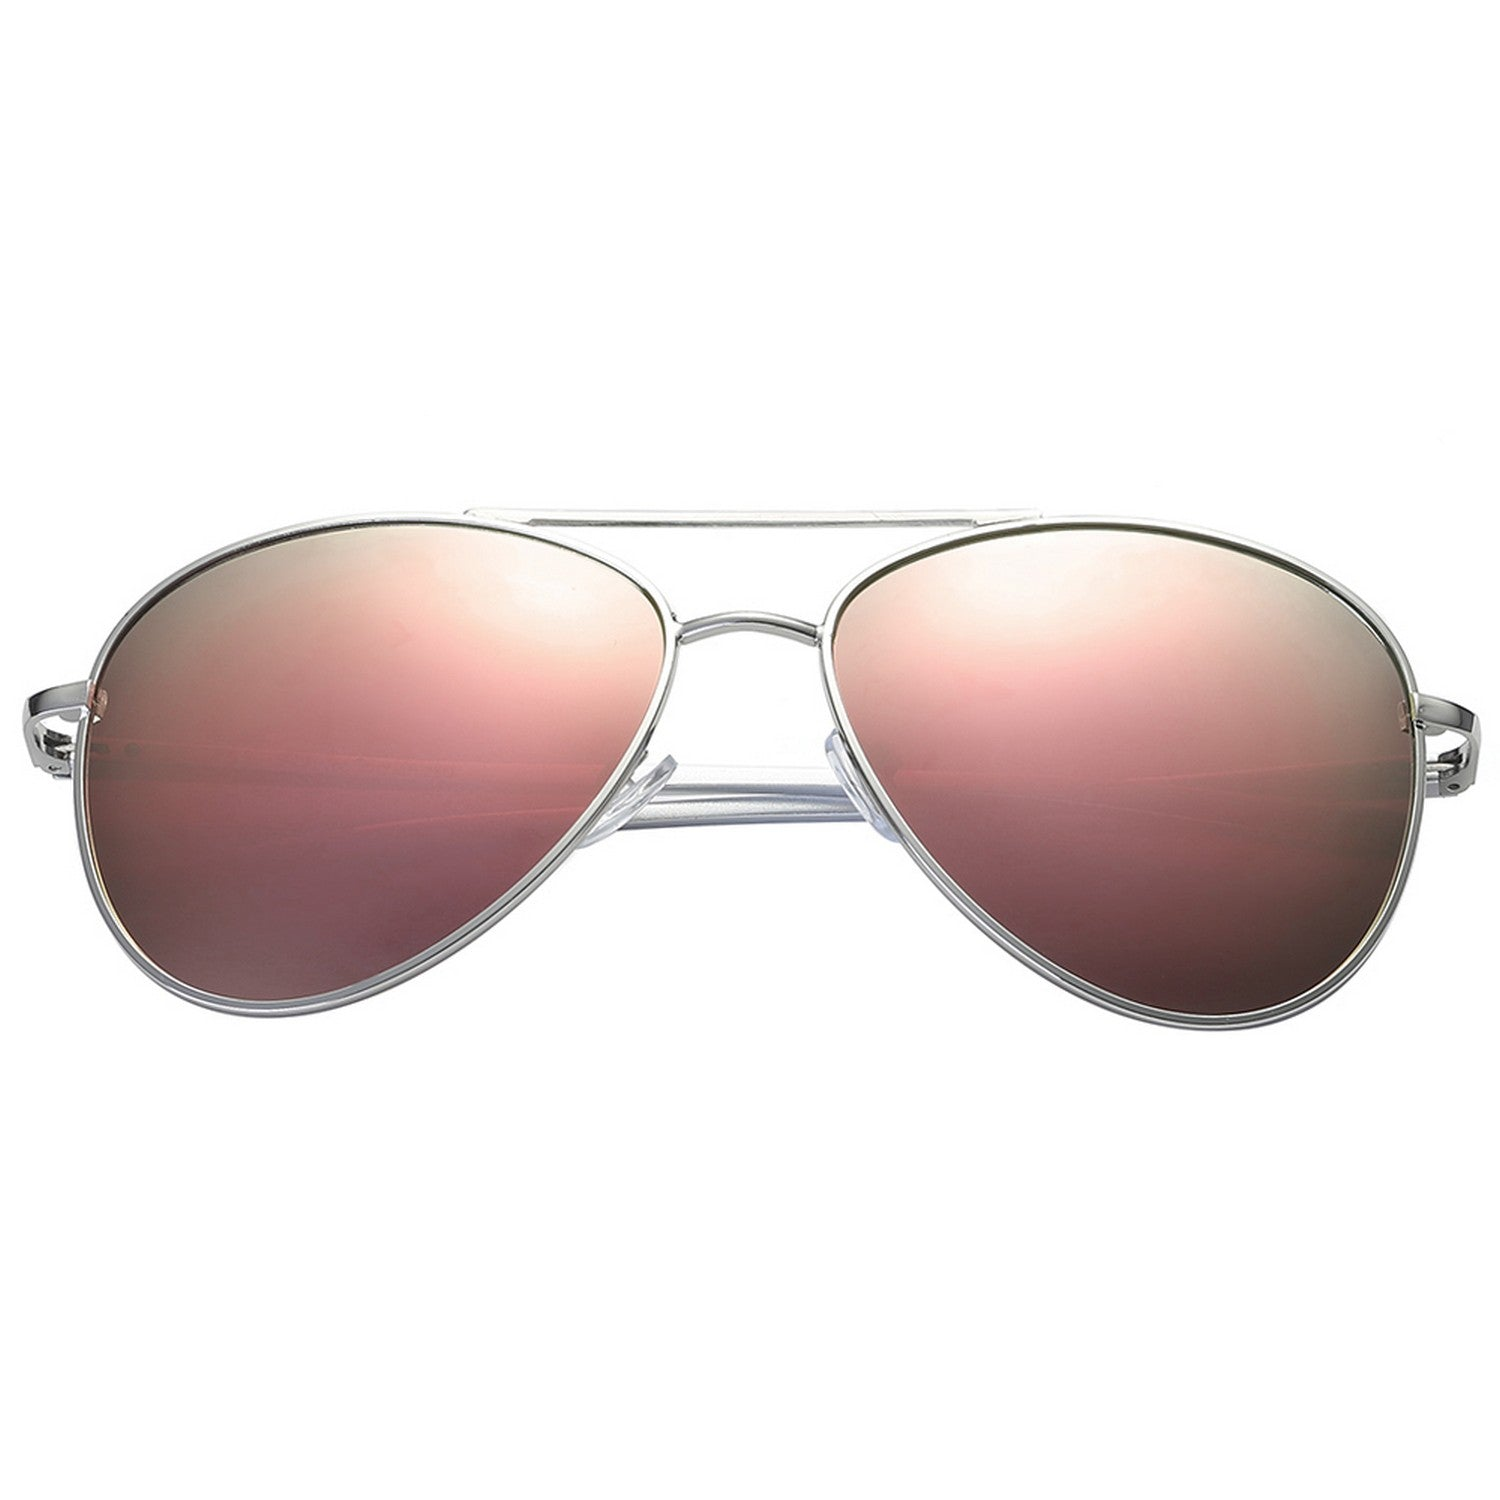 Polarspex Polarized Aviator Style Sunglasses with Aluminum Silver Frames and Polarized Pink Quartz Lenses for Men and Women